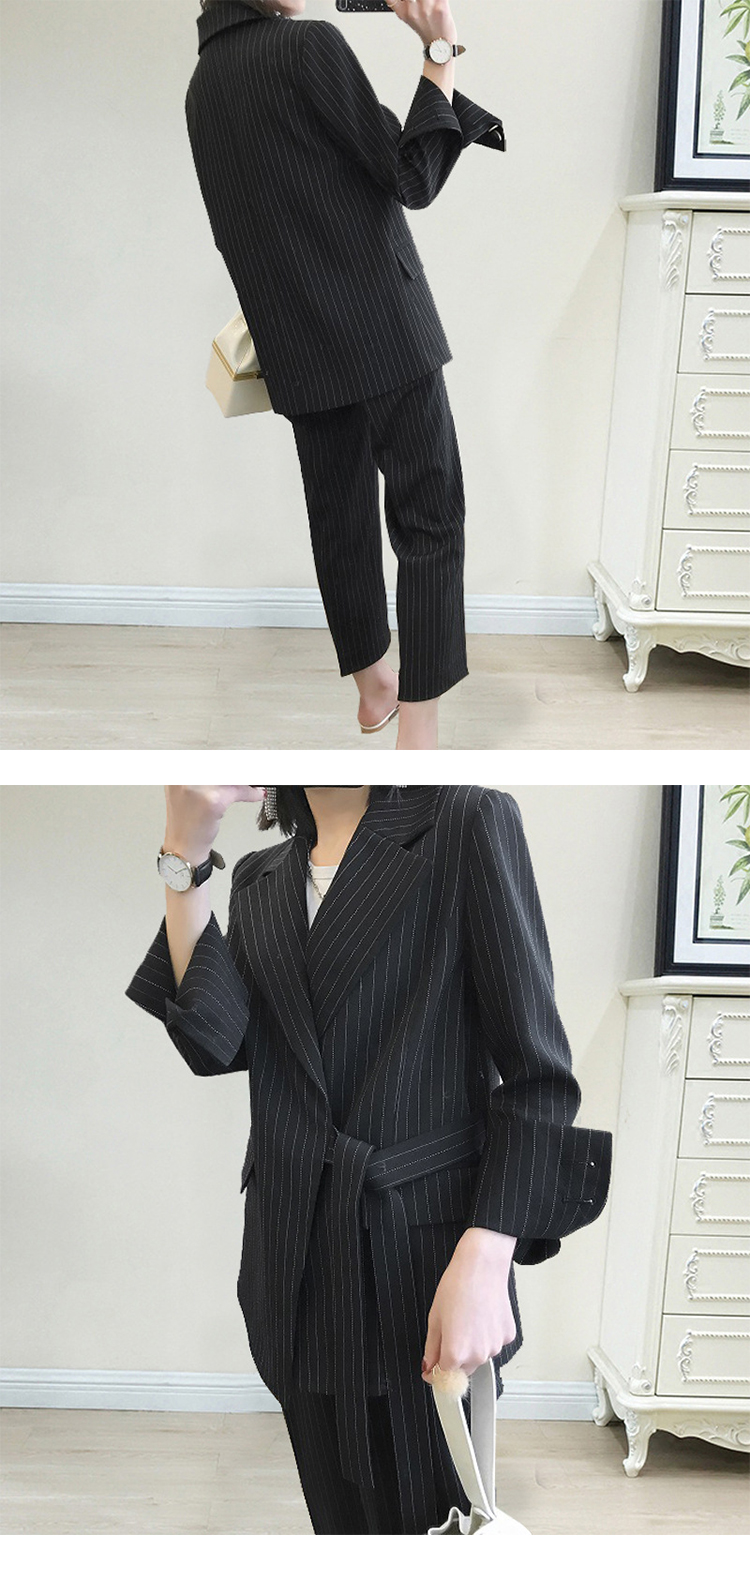 New arrival women plus big size pant suit professional temperament fashion warm suit elastic waist pant comfortable pant suits 3